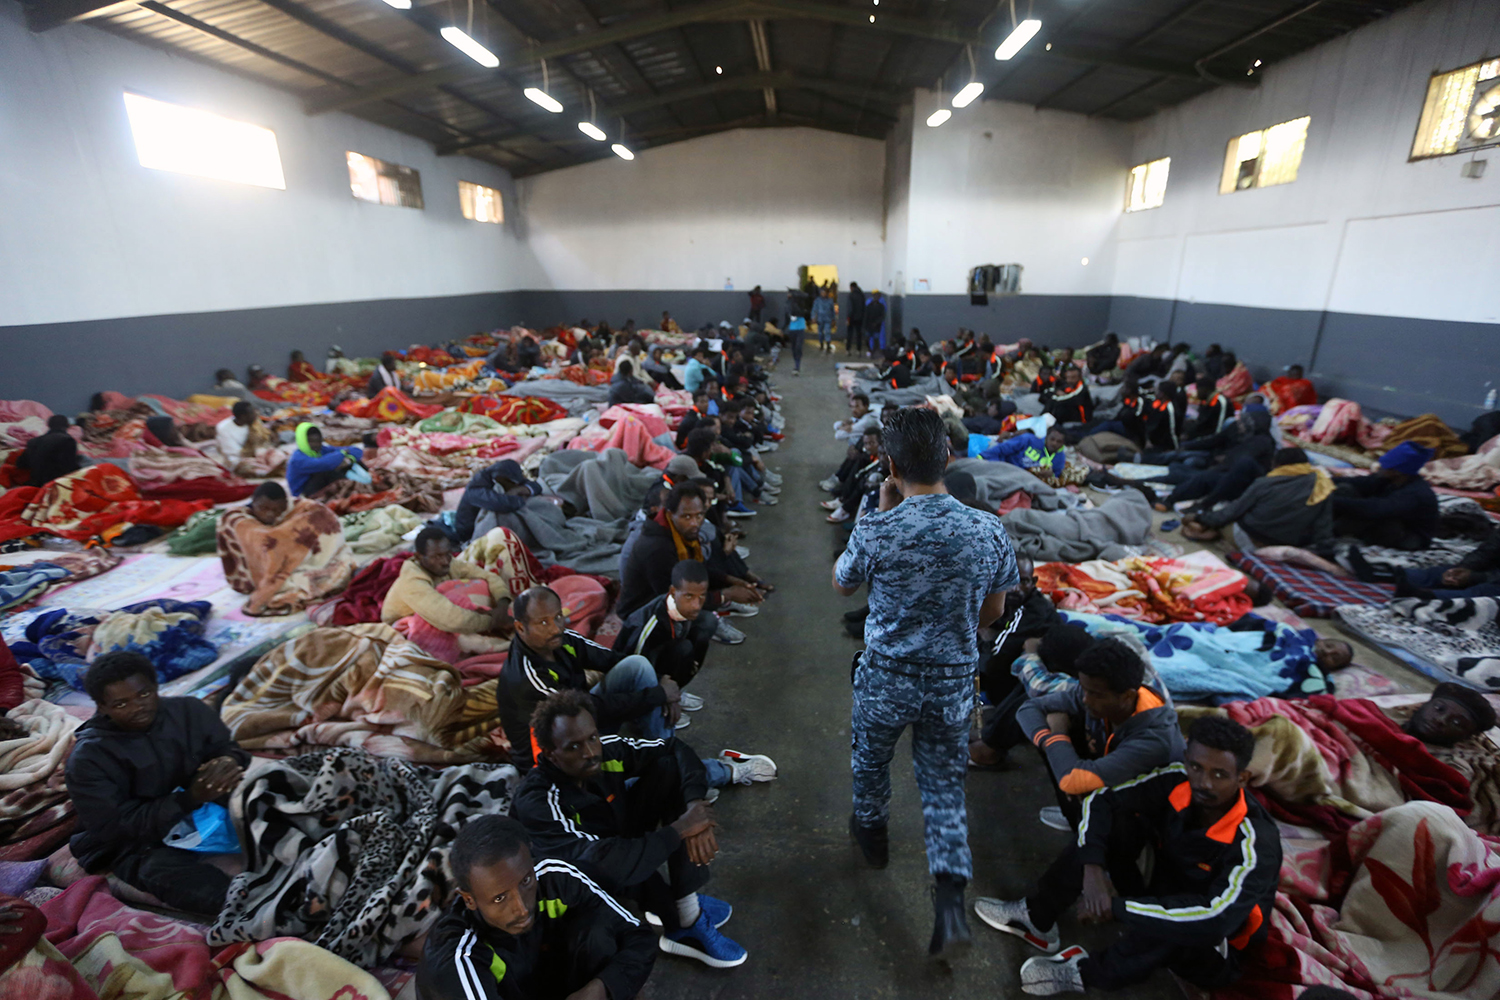 Migrants rest in a shelter at the Tariq Al-Matar migrant detention center on the outskirts of Tripoli on Dec. 11, 2017.